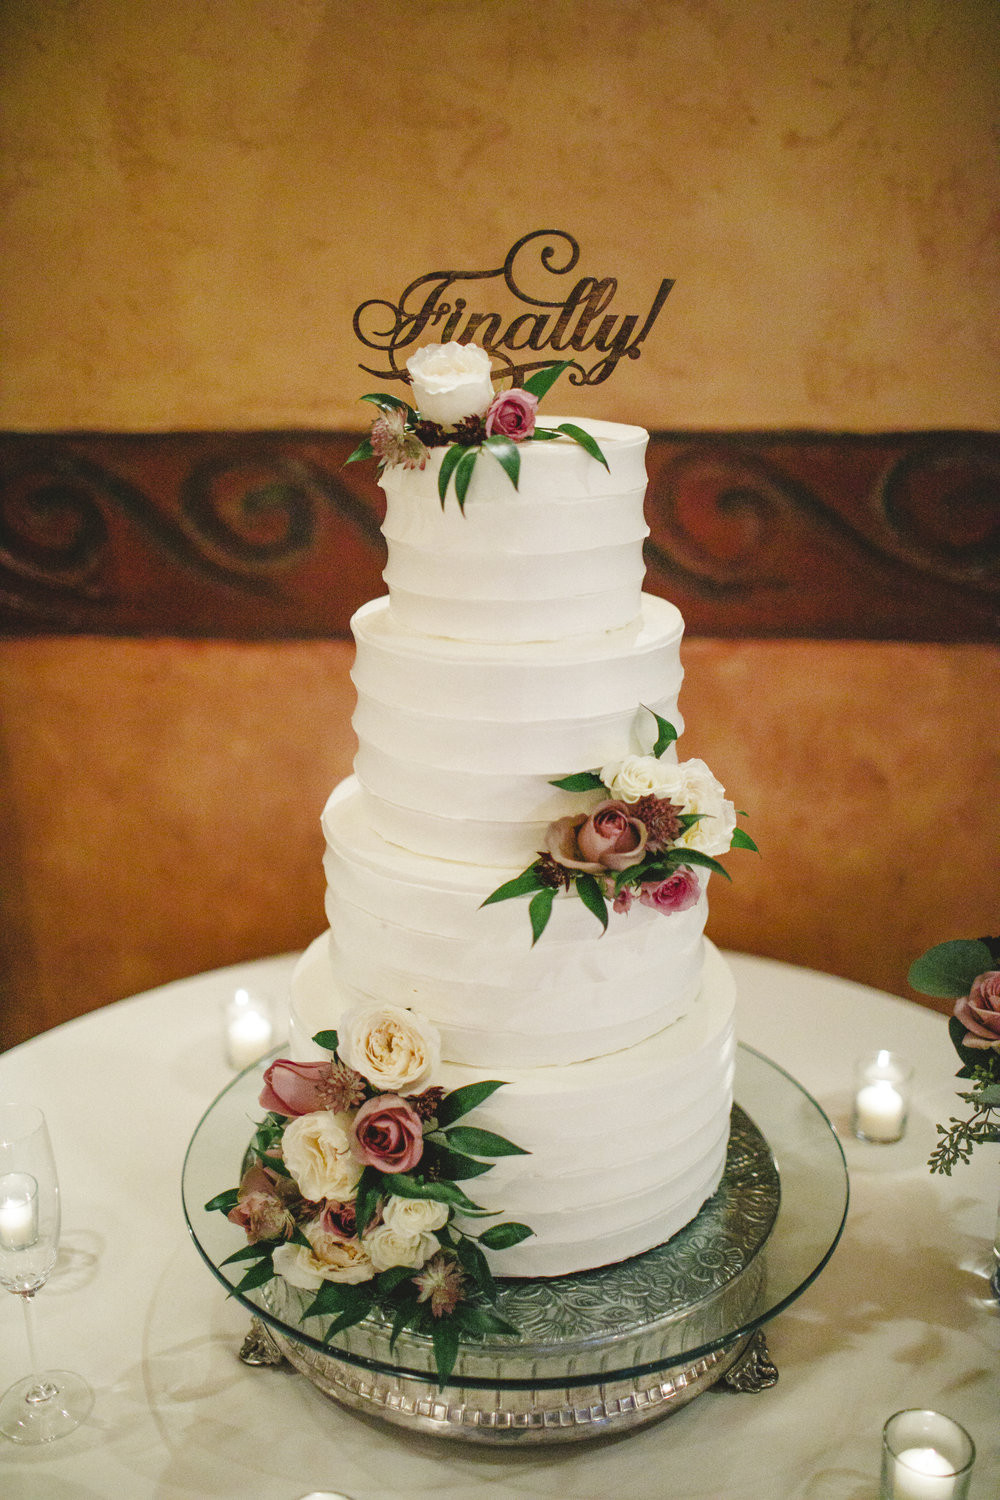 Wedding Cakes Scottsdale  Wedding Cakes Wedding Cakes Scottsdale Az Trends 2018